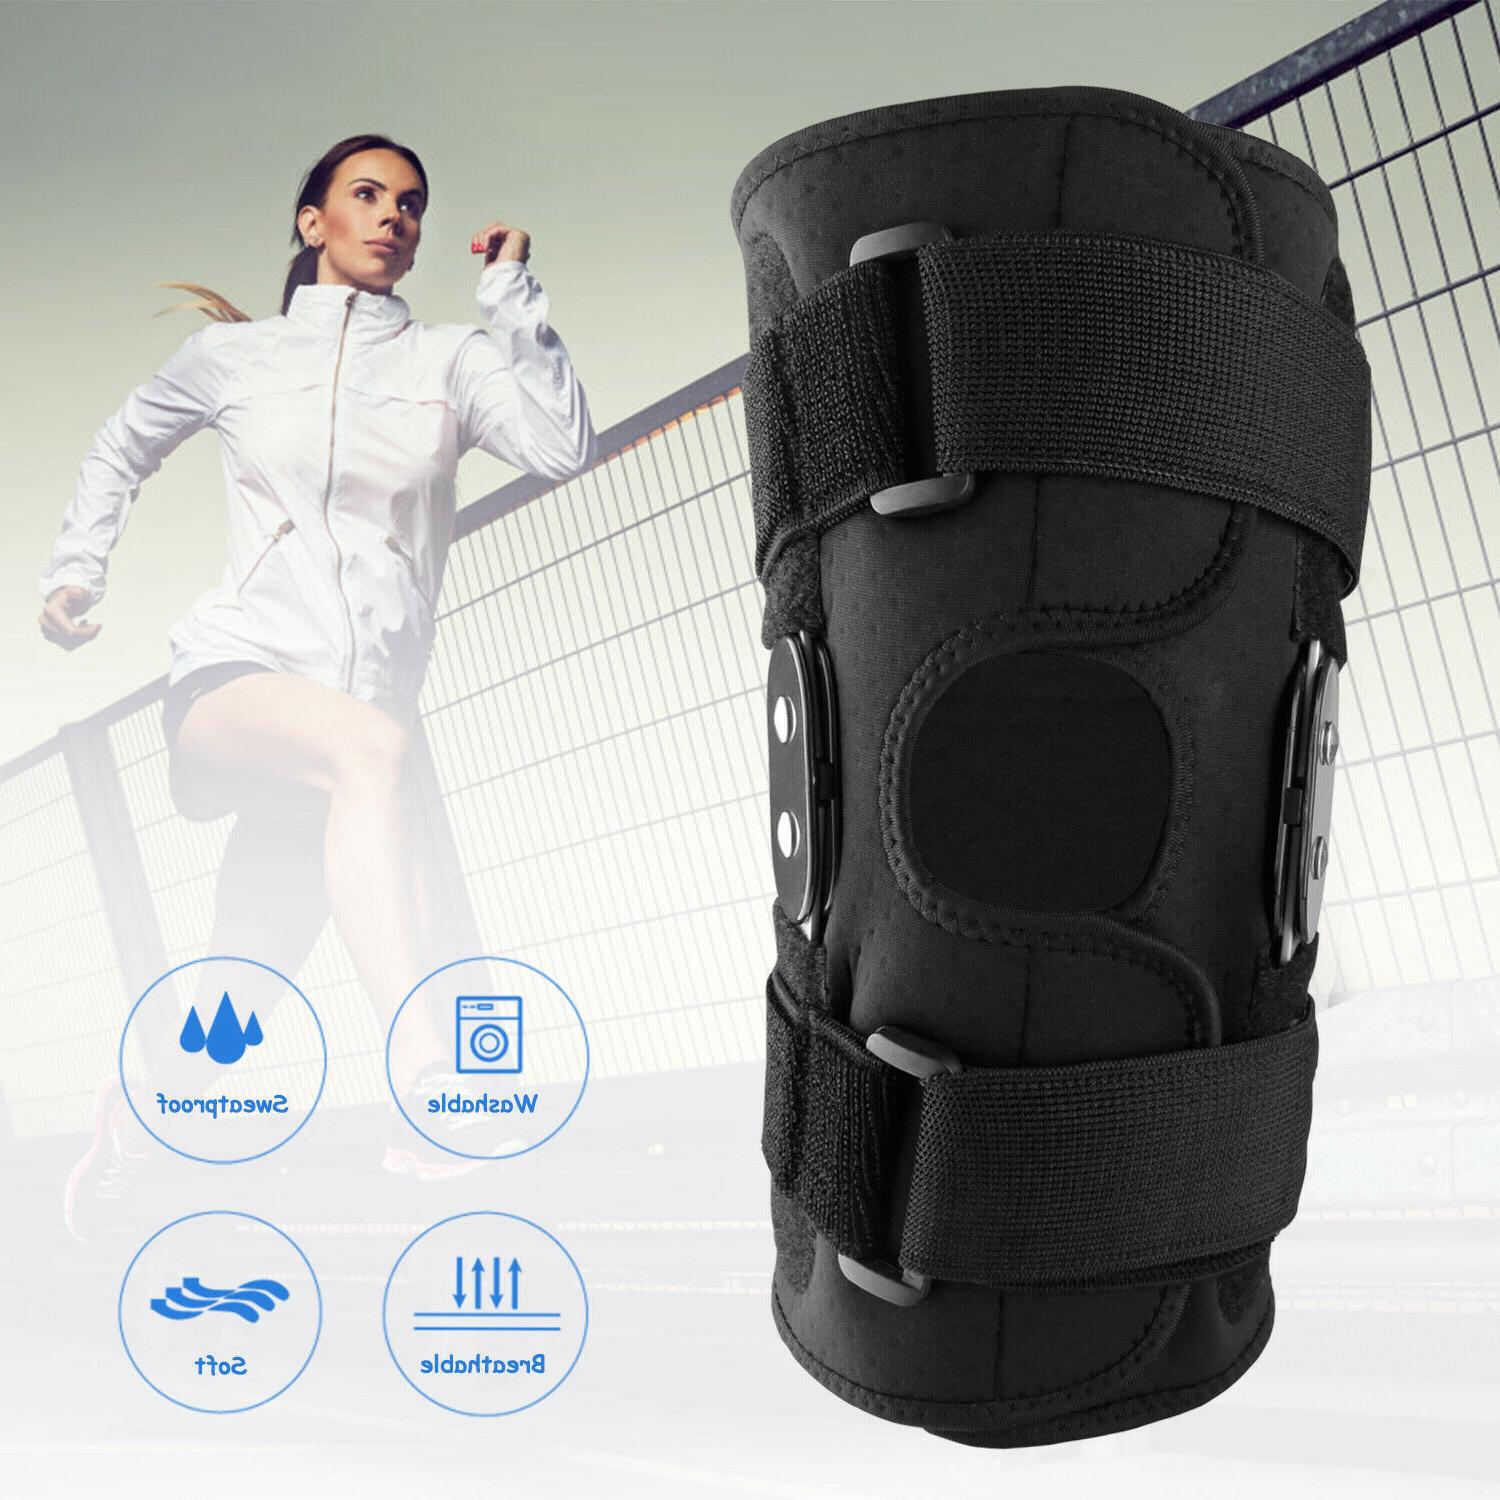 Adjustable Knee Support Wrap